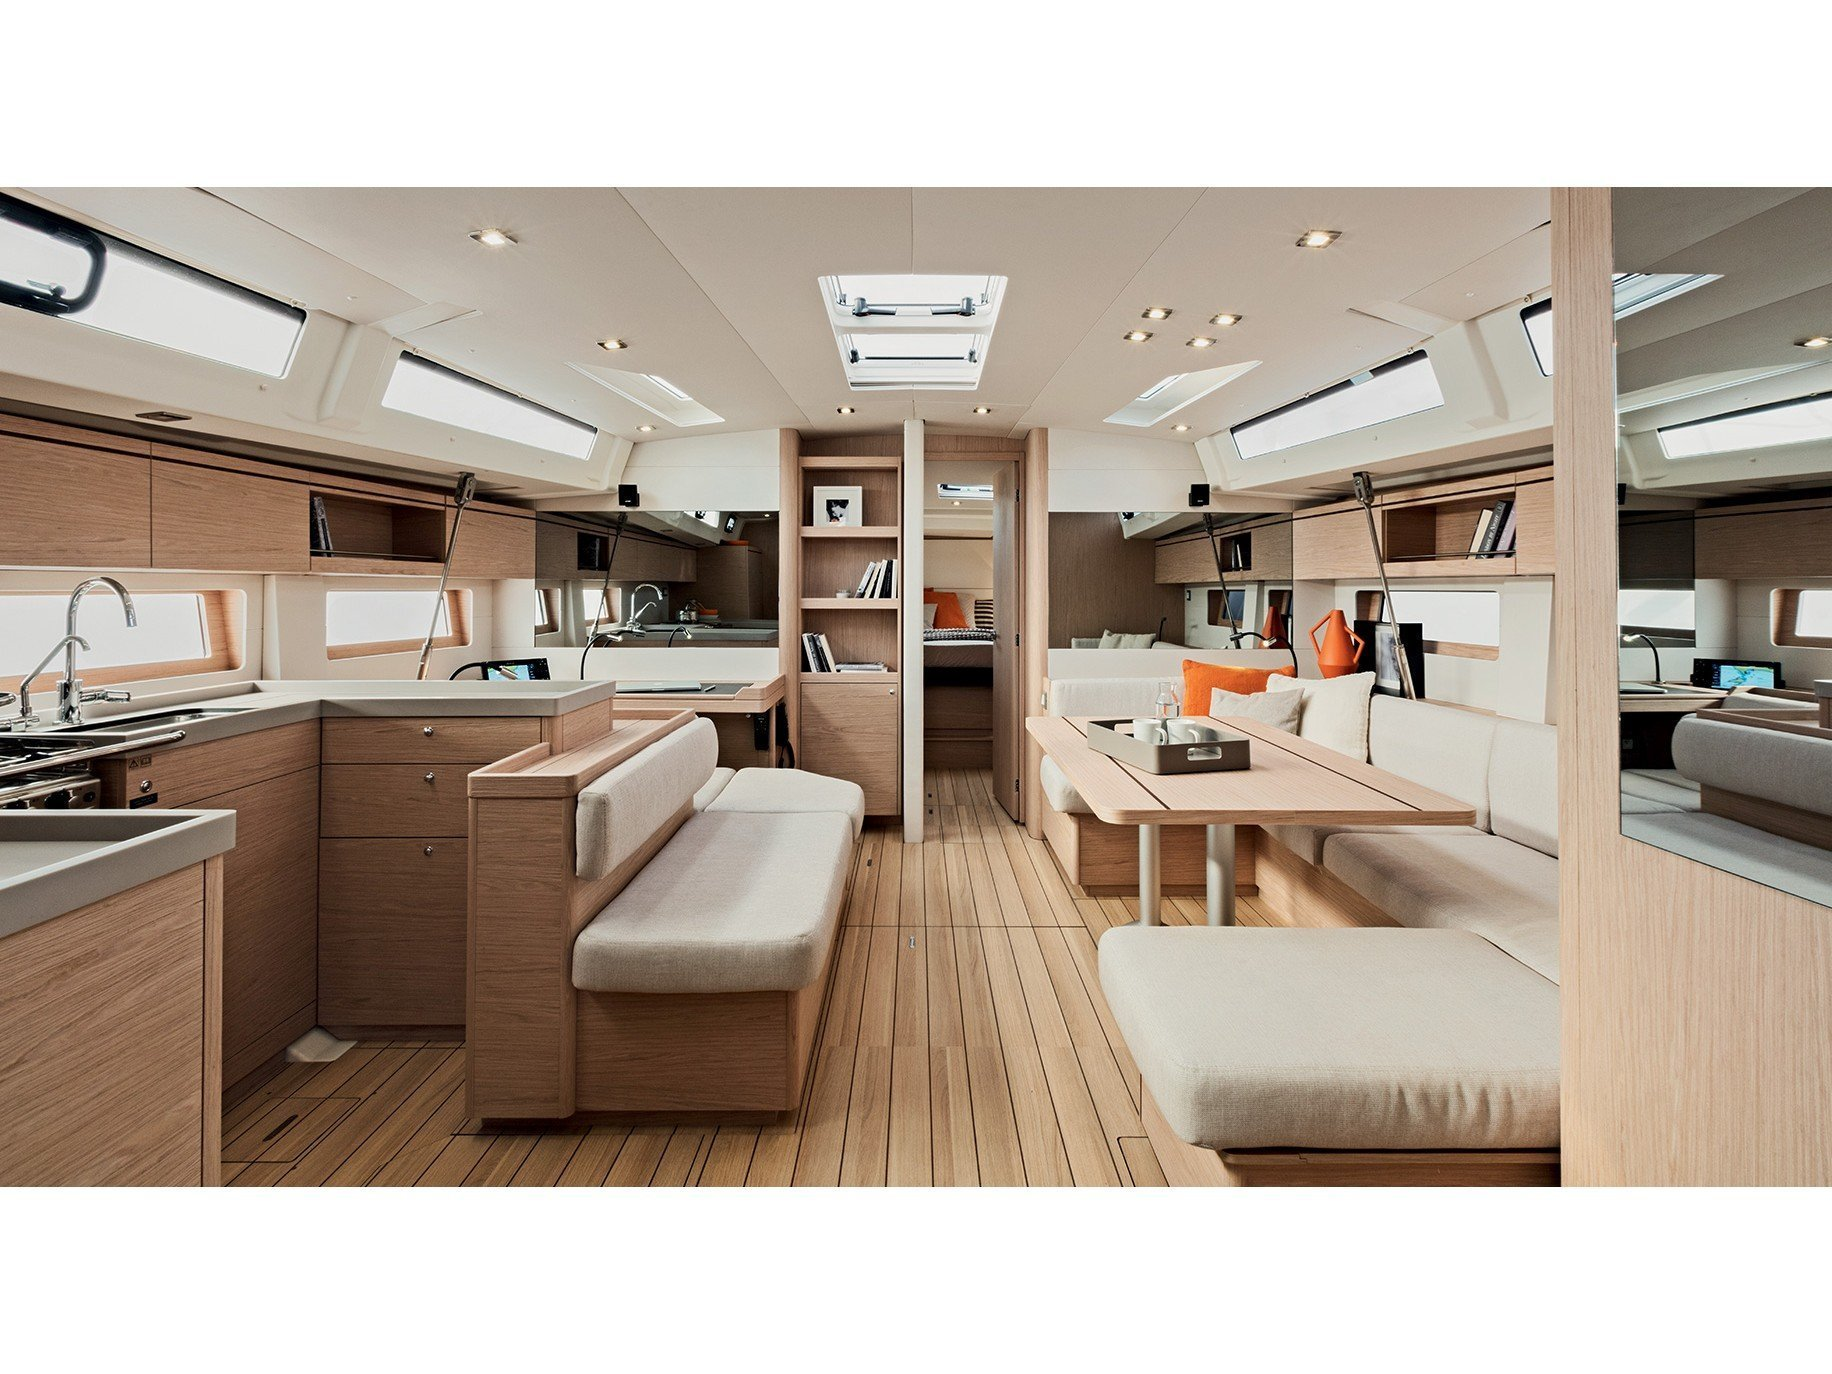 Oceanis 51.1 First Line (Pisces) Interior image - 33